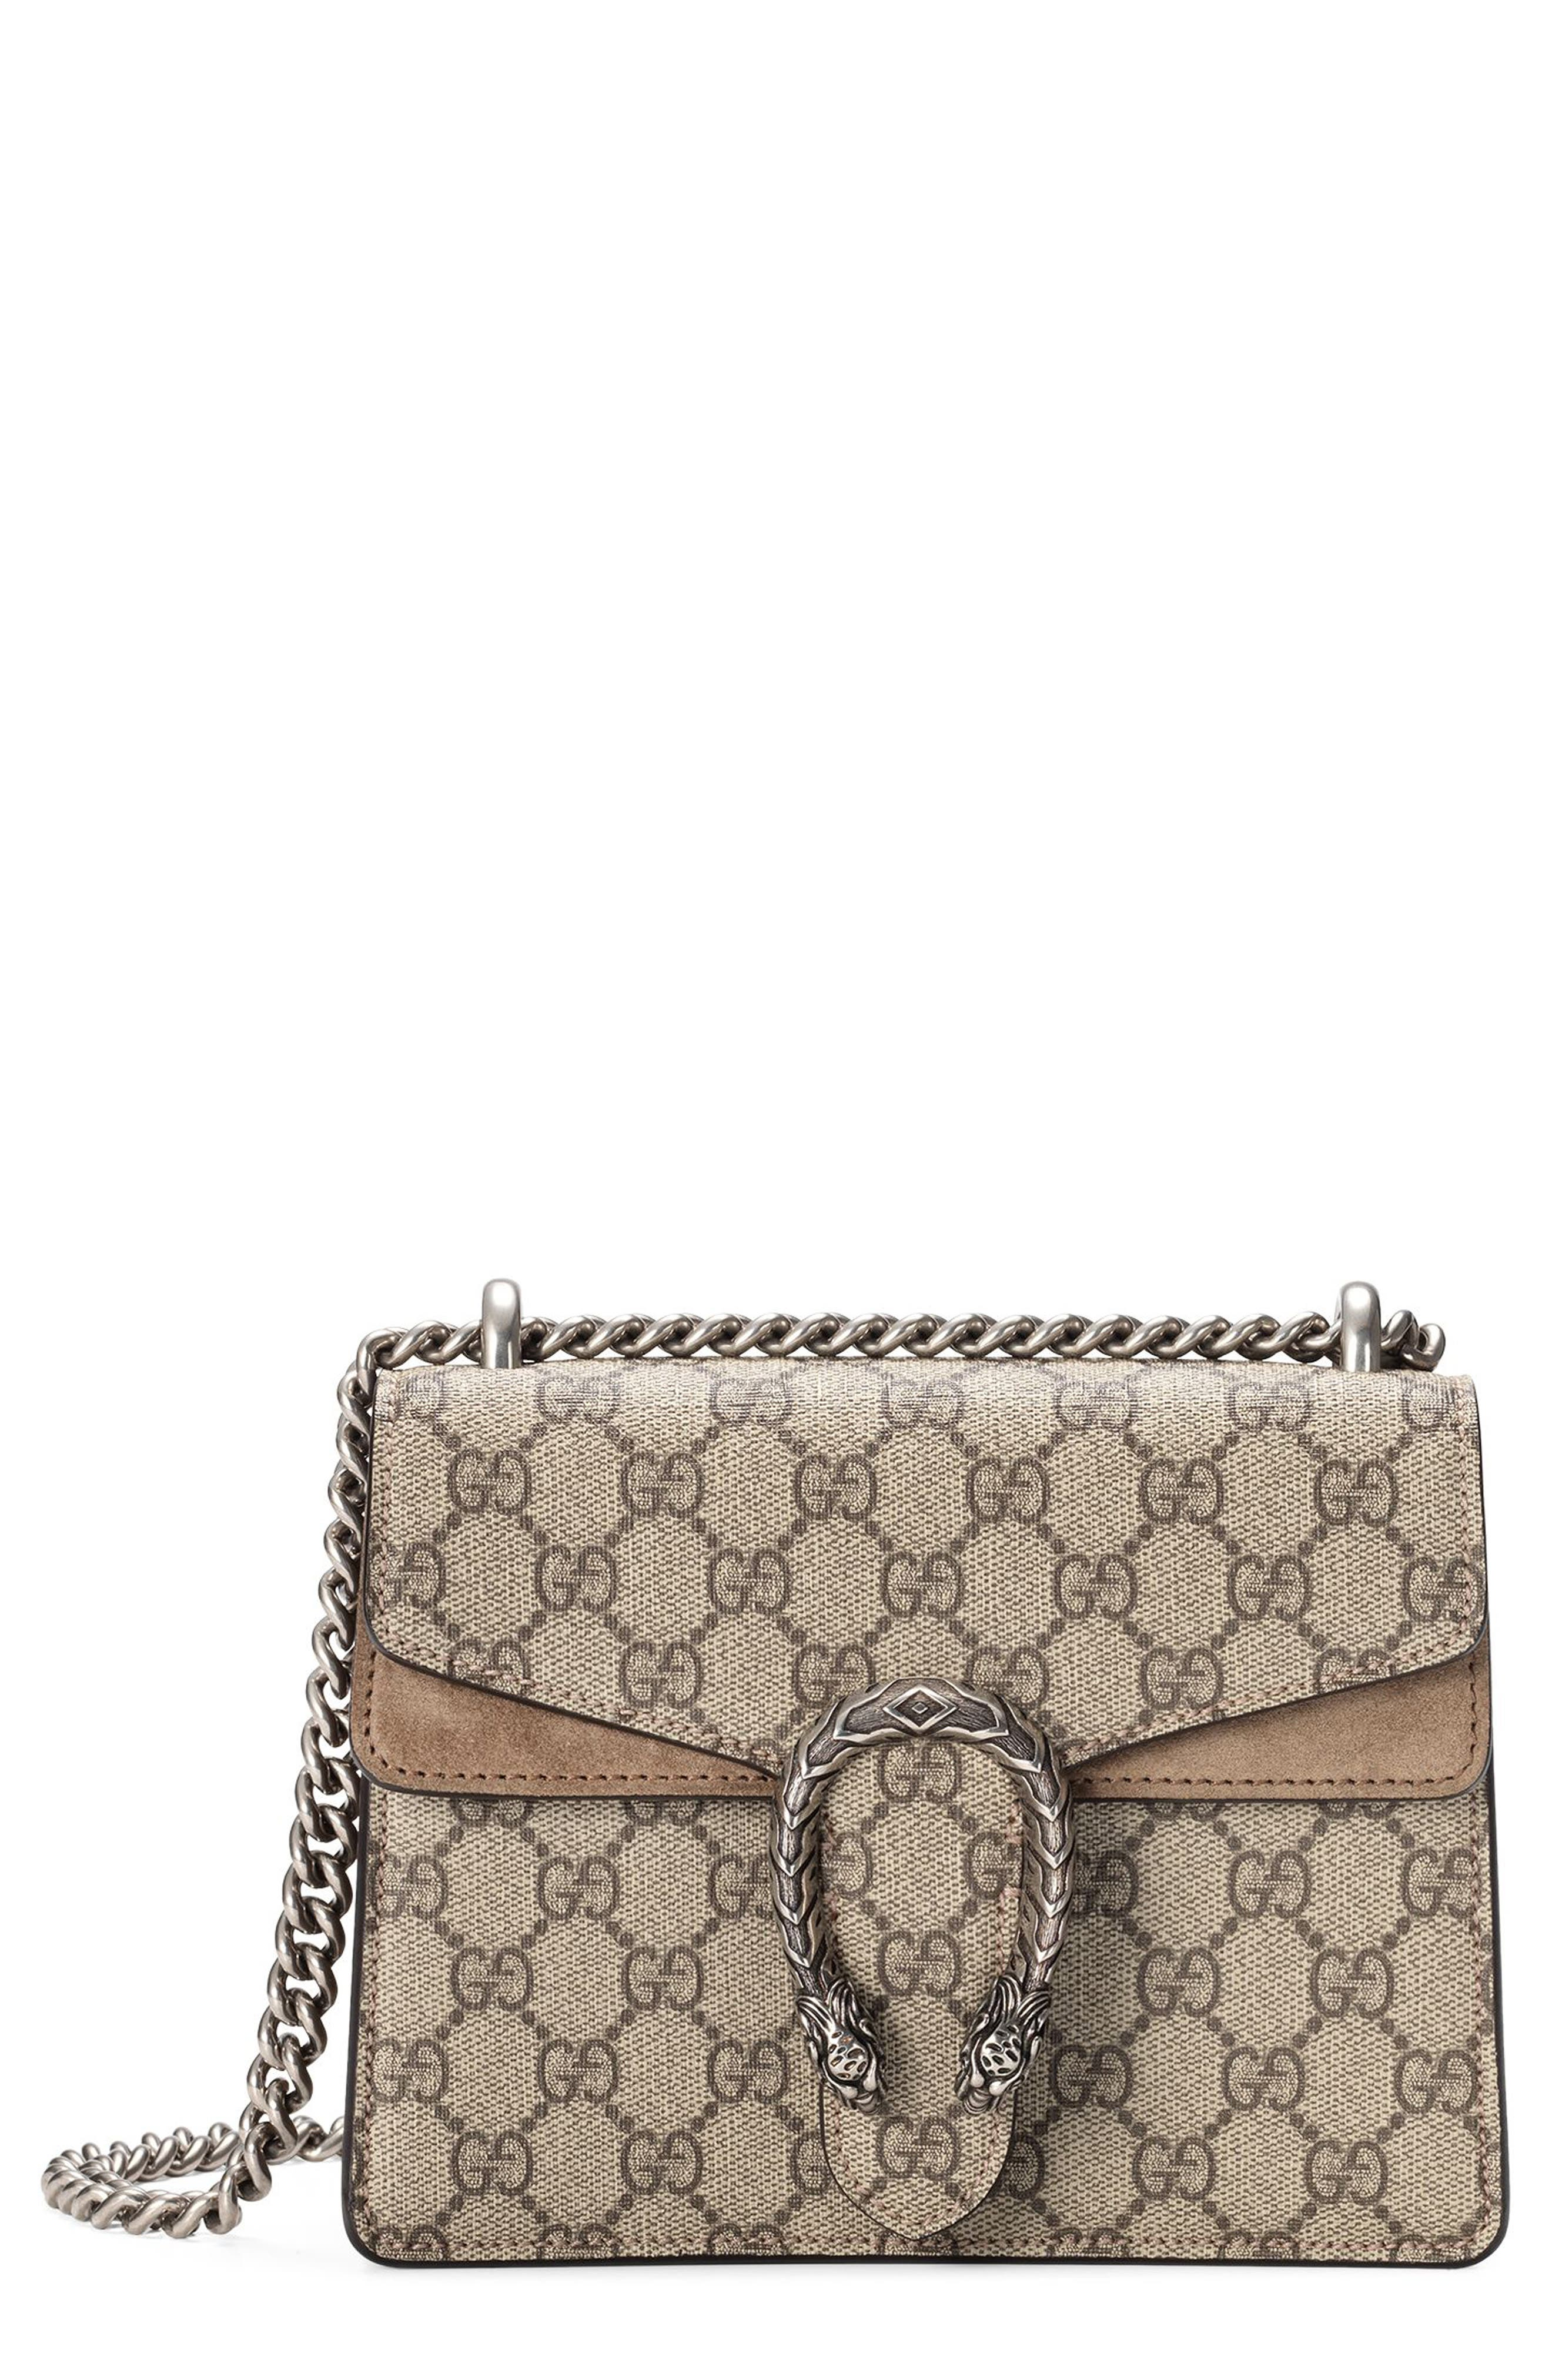 GUCCI,                             Mini Dionysus GG Supreme Shoulder Bag,                             Main thumbnail 1, color,                             BEIGE EBONY/ TAUPE